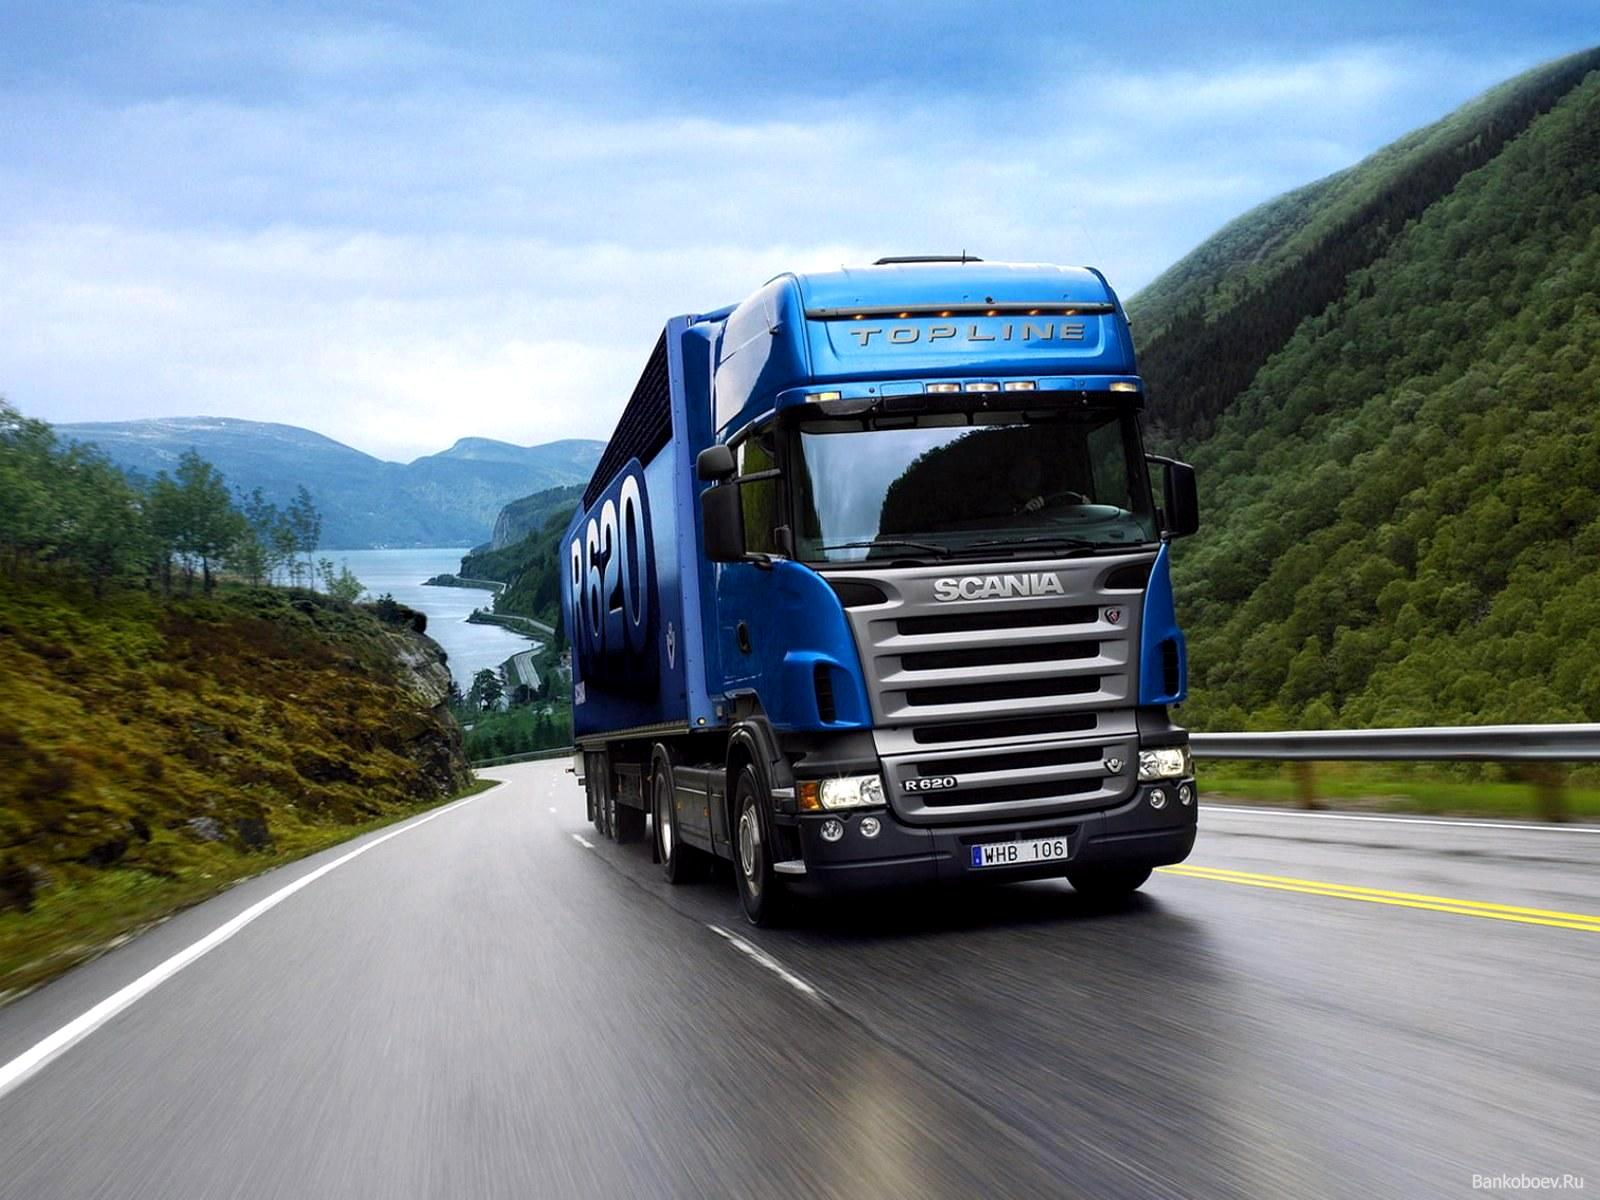 Blue Truck Scania Wallpaper Wallpaper WallpaperLepi 1600x1200